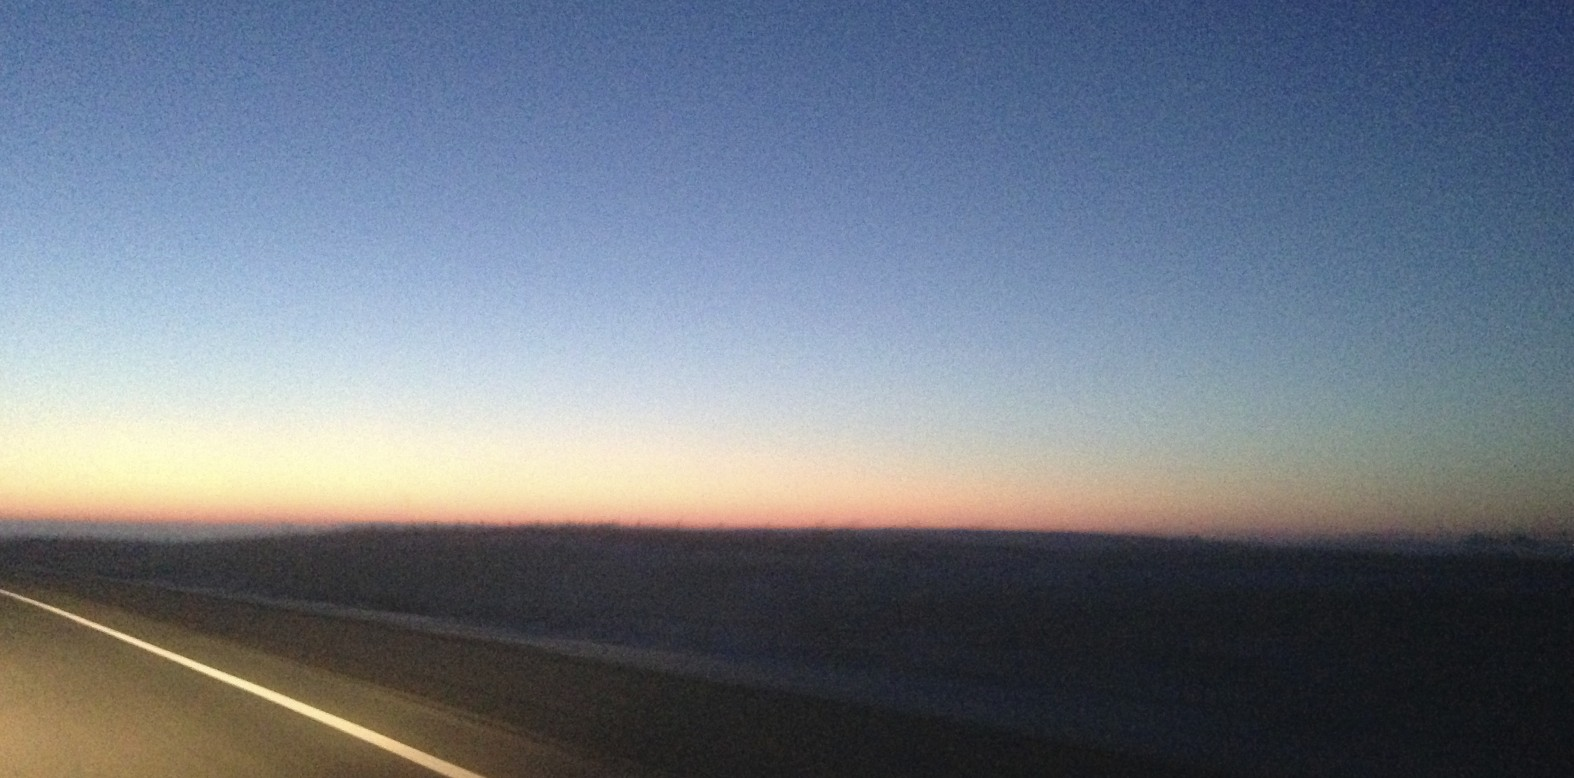 The sun was just rising over Minnesota when I completed my 606-mile overnight drive.